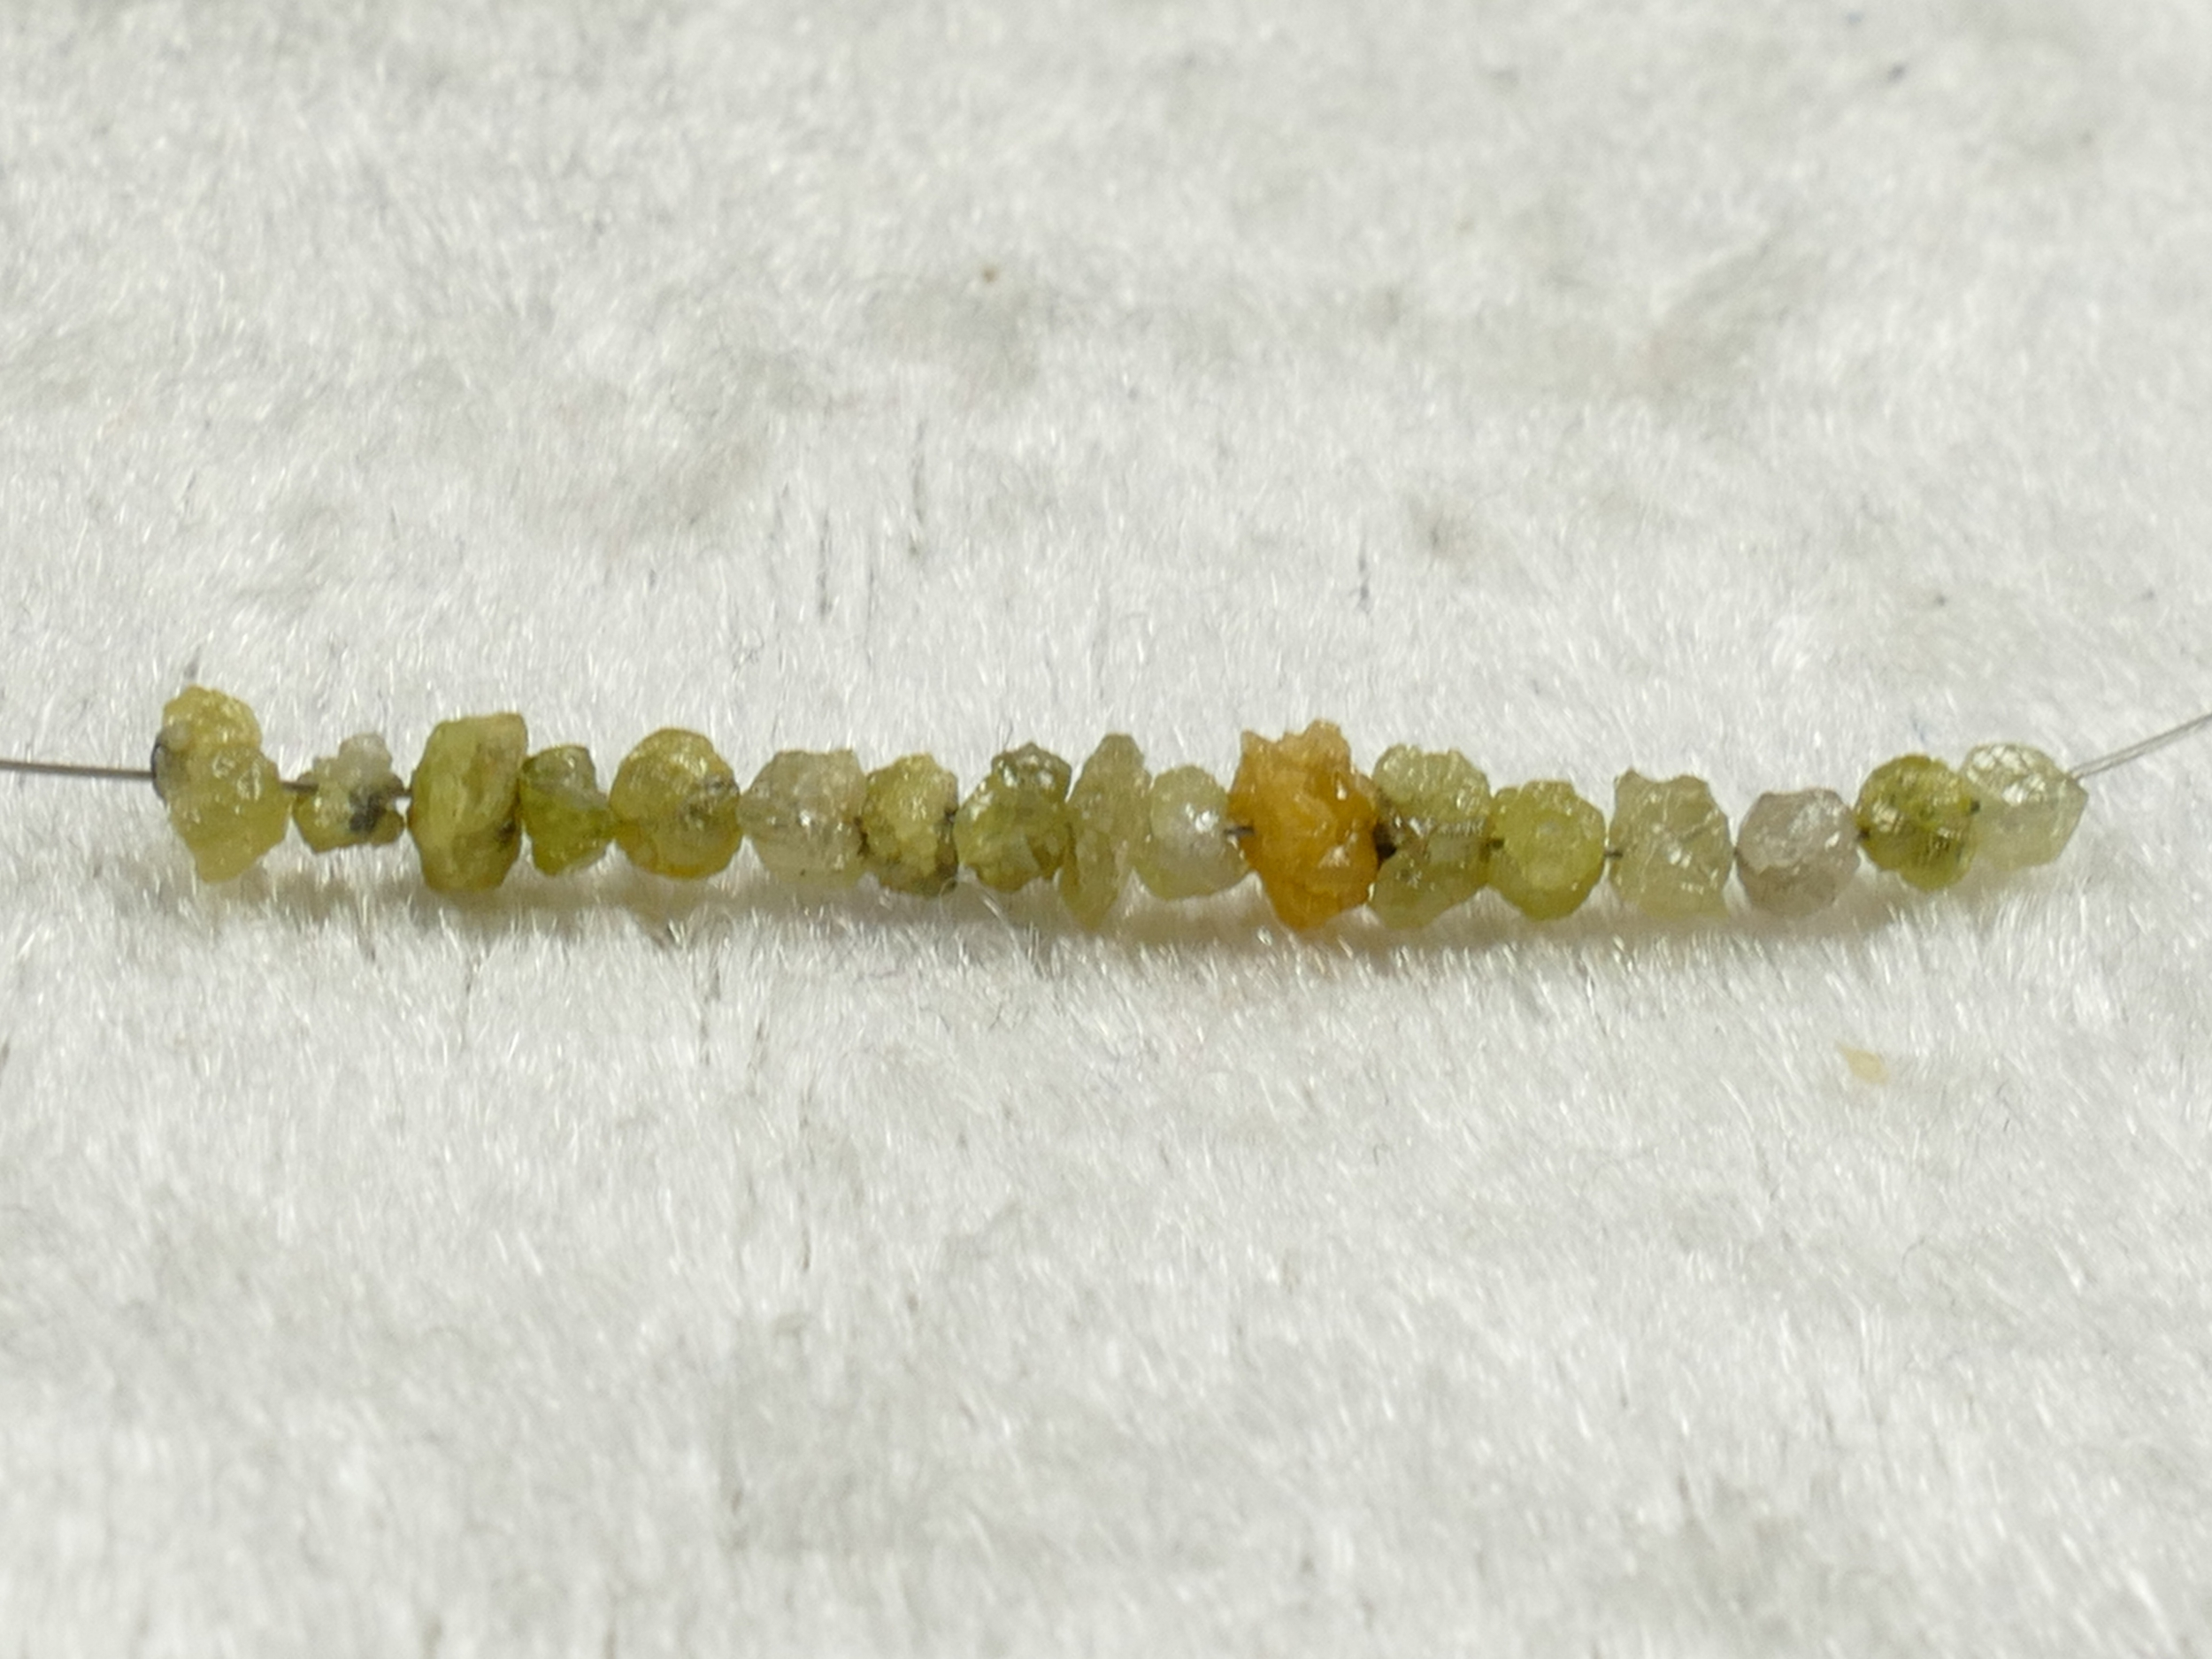 17 Perle de Diamant naturel vert clair jaune brut lot 1 carat pépite percé 27mm de long (#PK234)